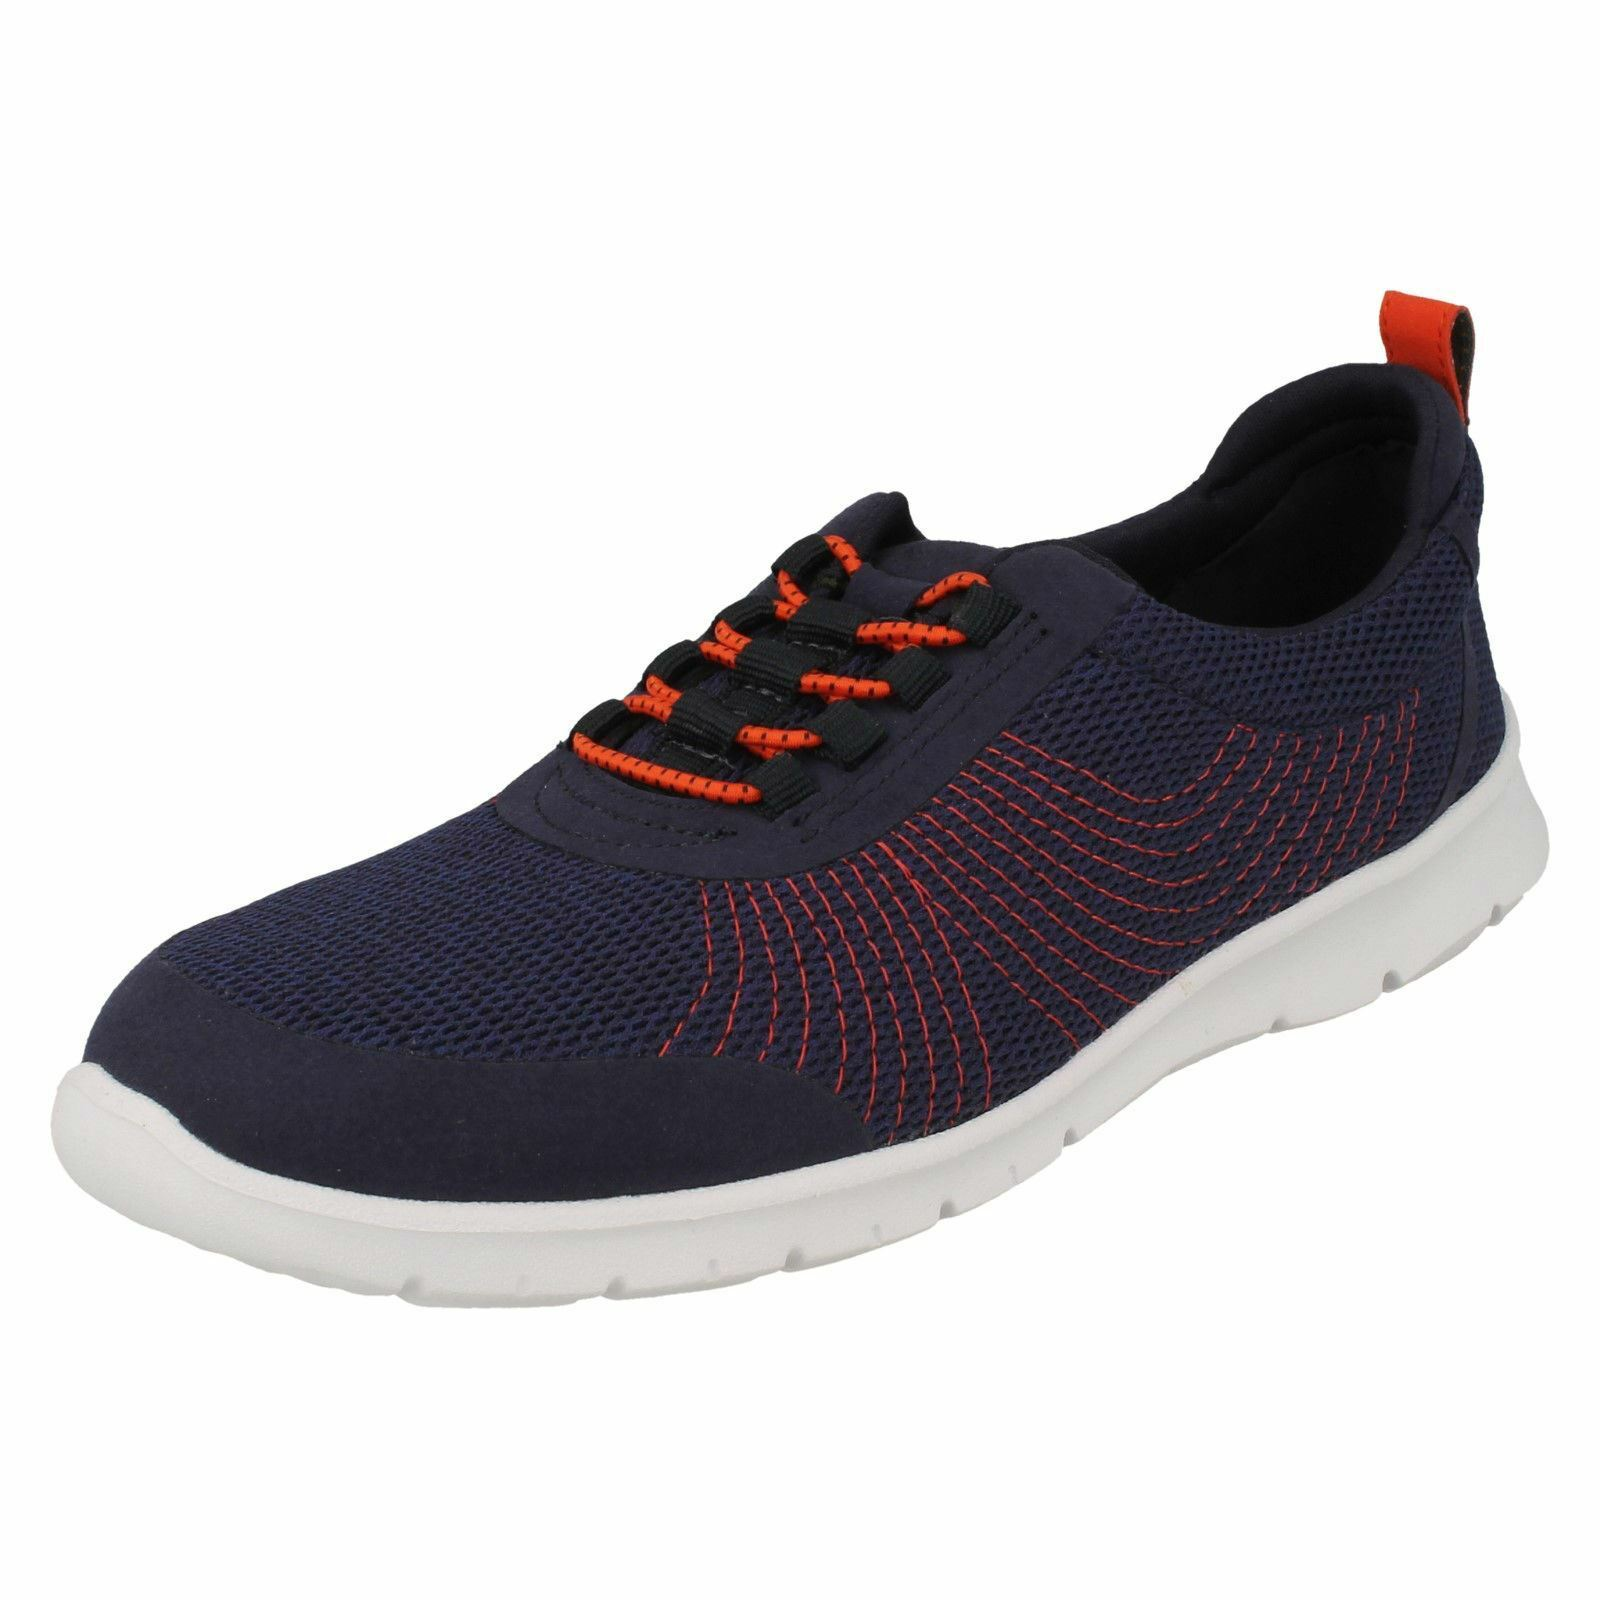 Ladies Clarks Clarks Clarks Elasticated Fastener Sports Trainers - Step Allena Bay ad65d4